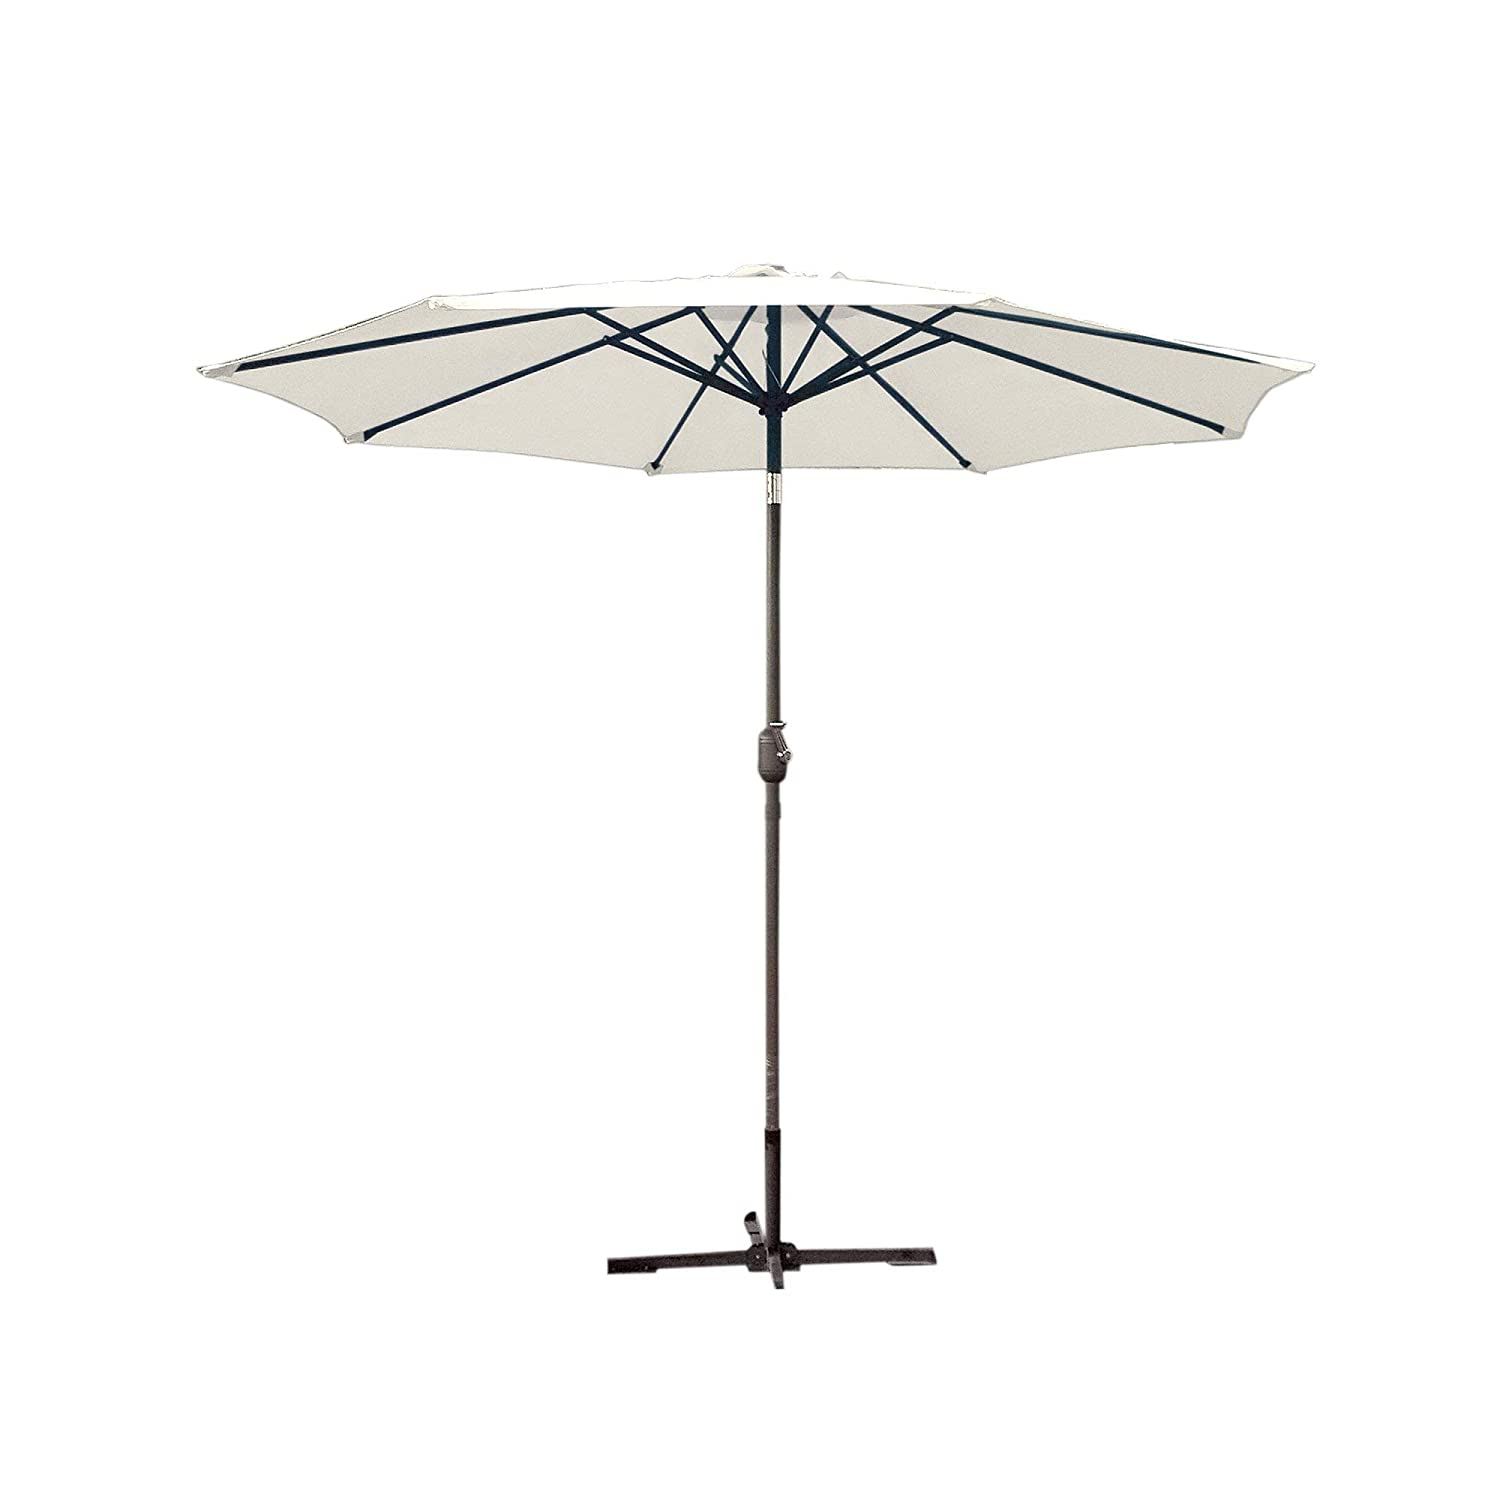 Jeco UBP95-UBF92 Aluminum Patio Market Umbrella Tilt with Crank Fabric Grey Pole, 9 , Tan